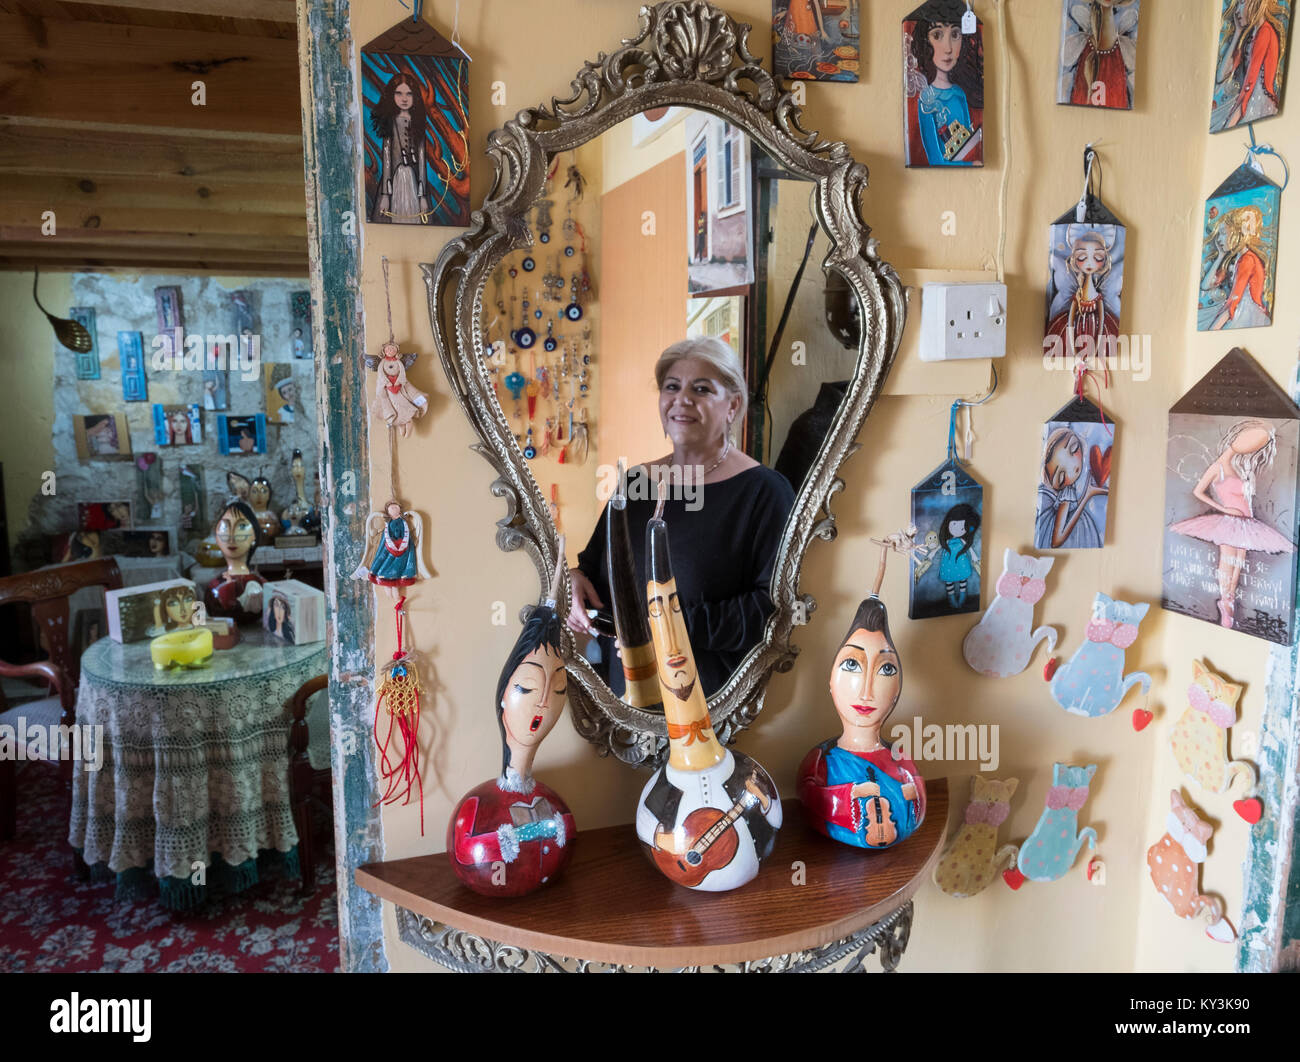 Painted faces on pumpkins and other art works in a small souvenir shop in Paphos old town centre. - Stock Image